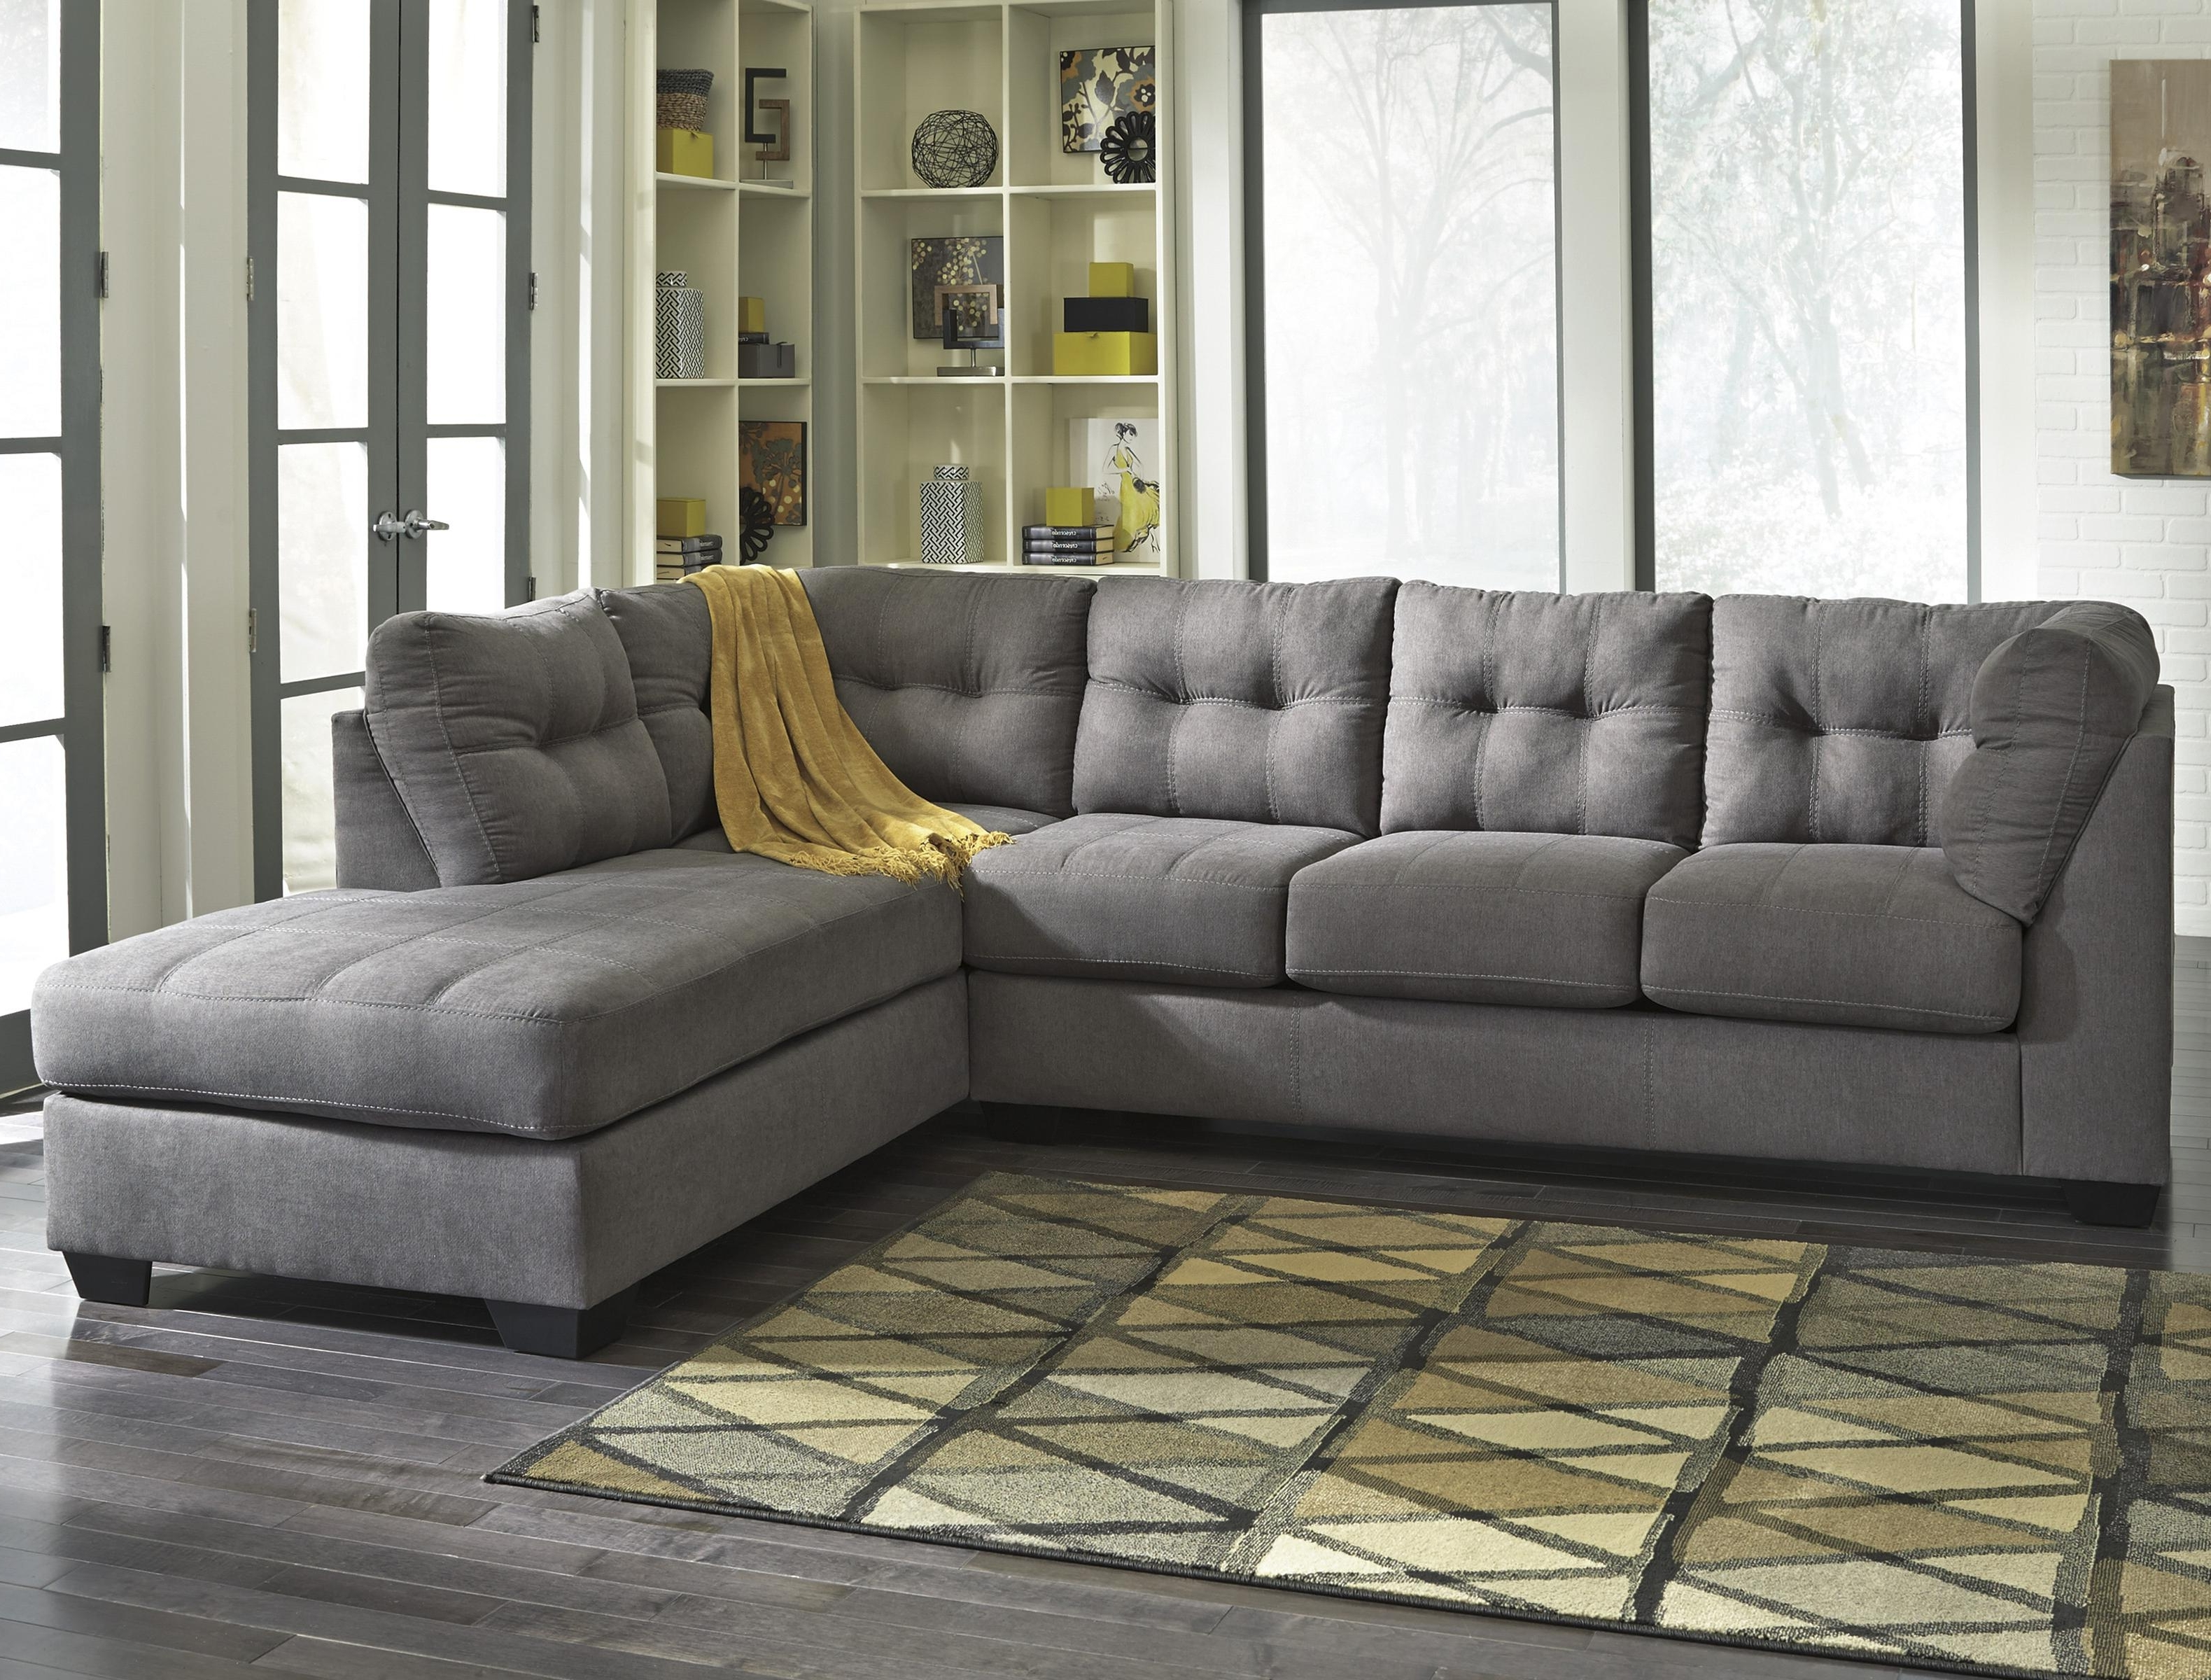 Popular Benchcraftashley Maier – Charcoal 2 Piece Sectional With Right Inside Sectional Sofas At Birmingham Al (View 12 of 15)